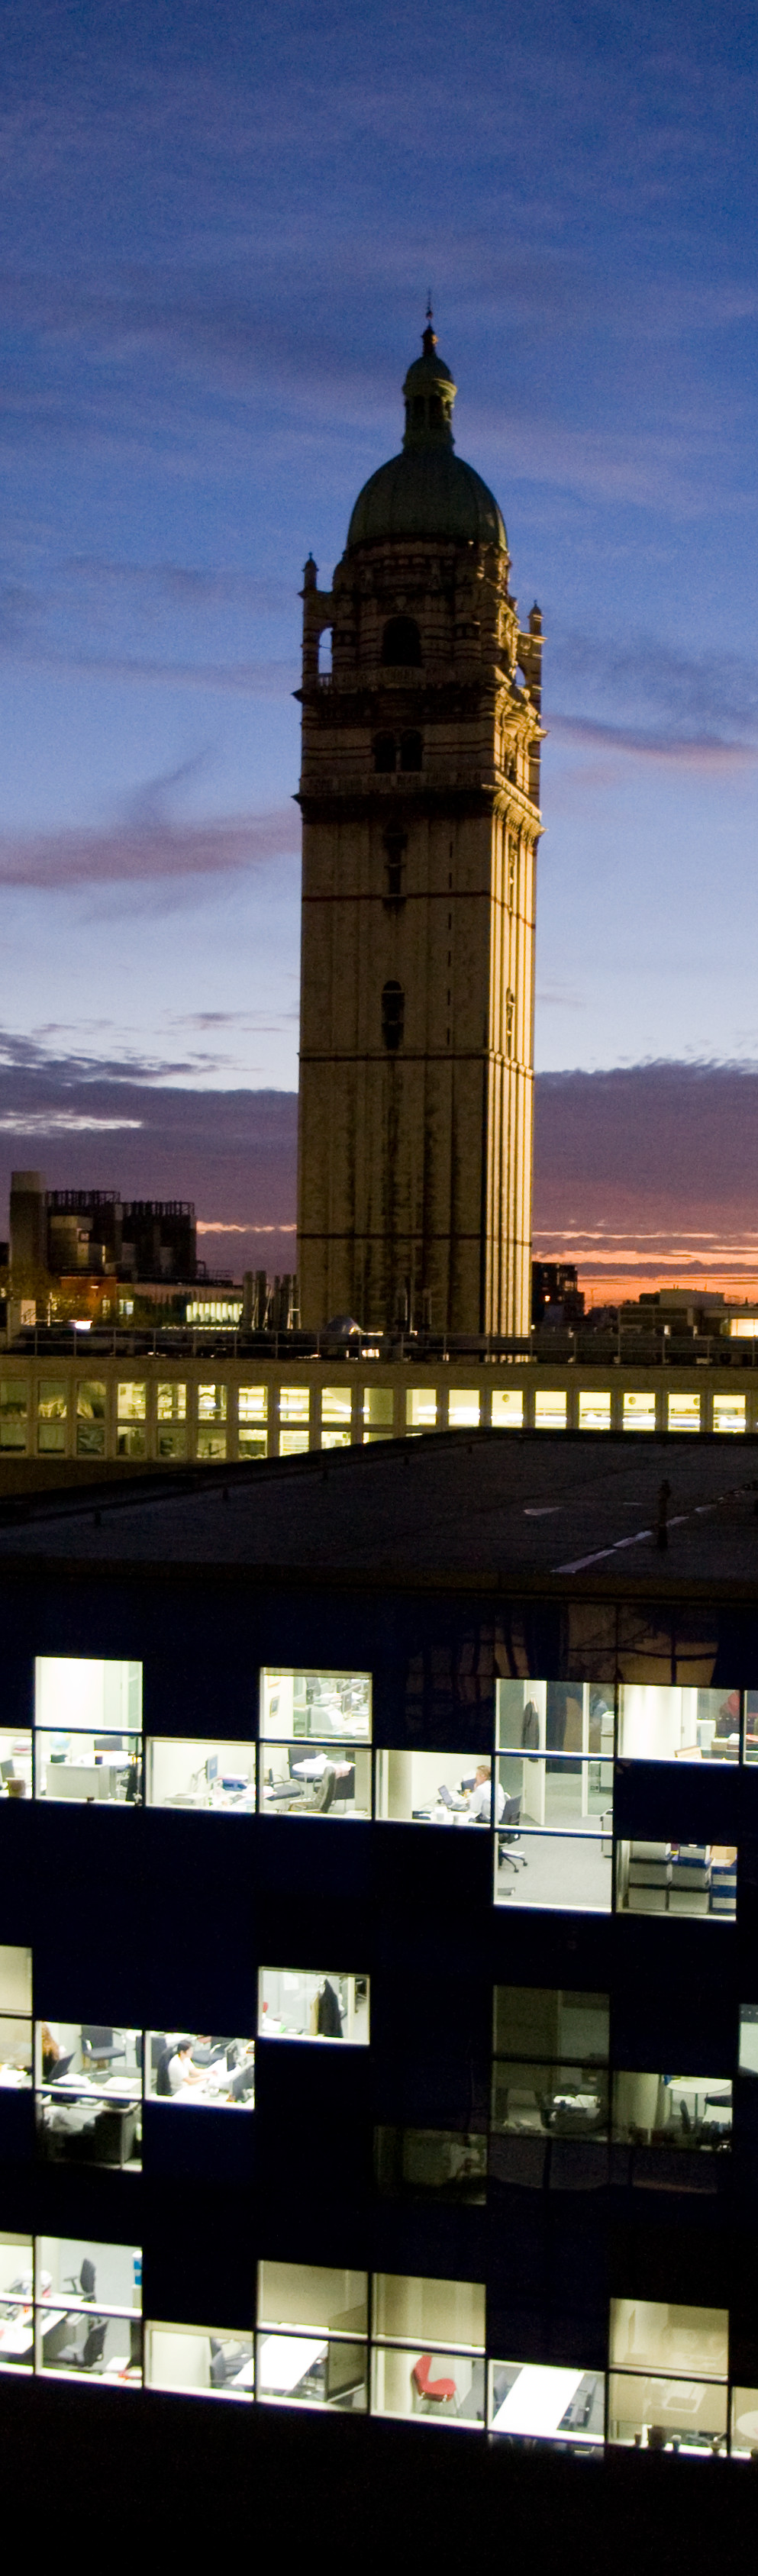 Queen's Tower, Imperial College